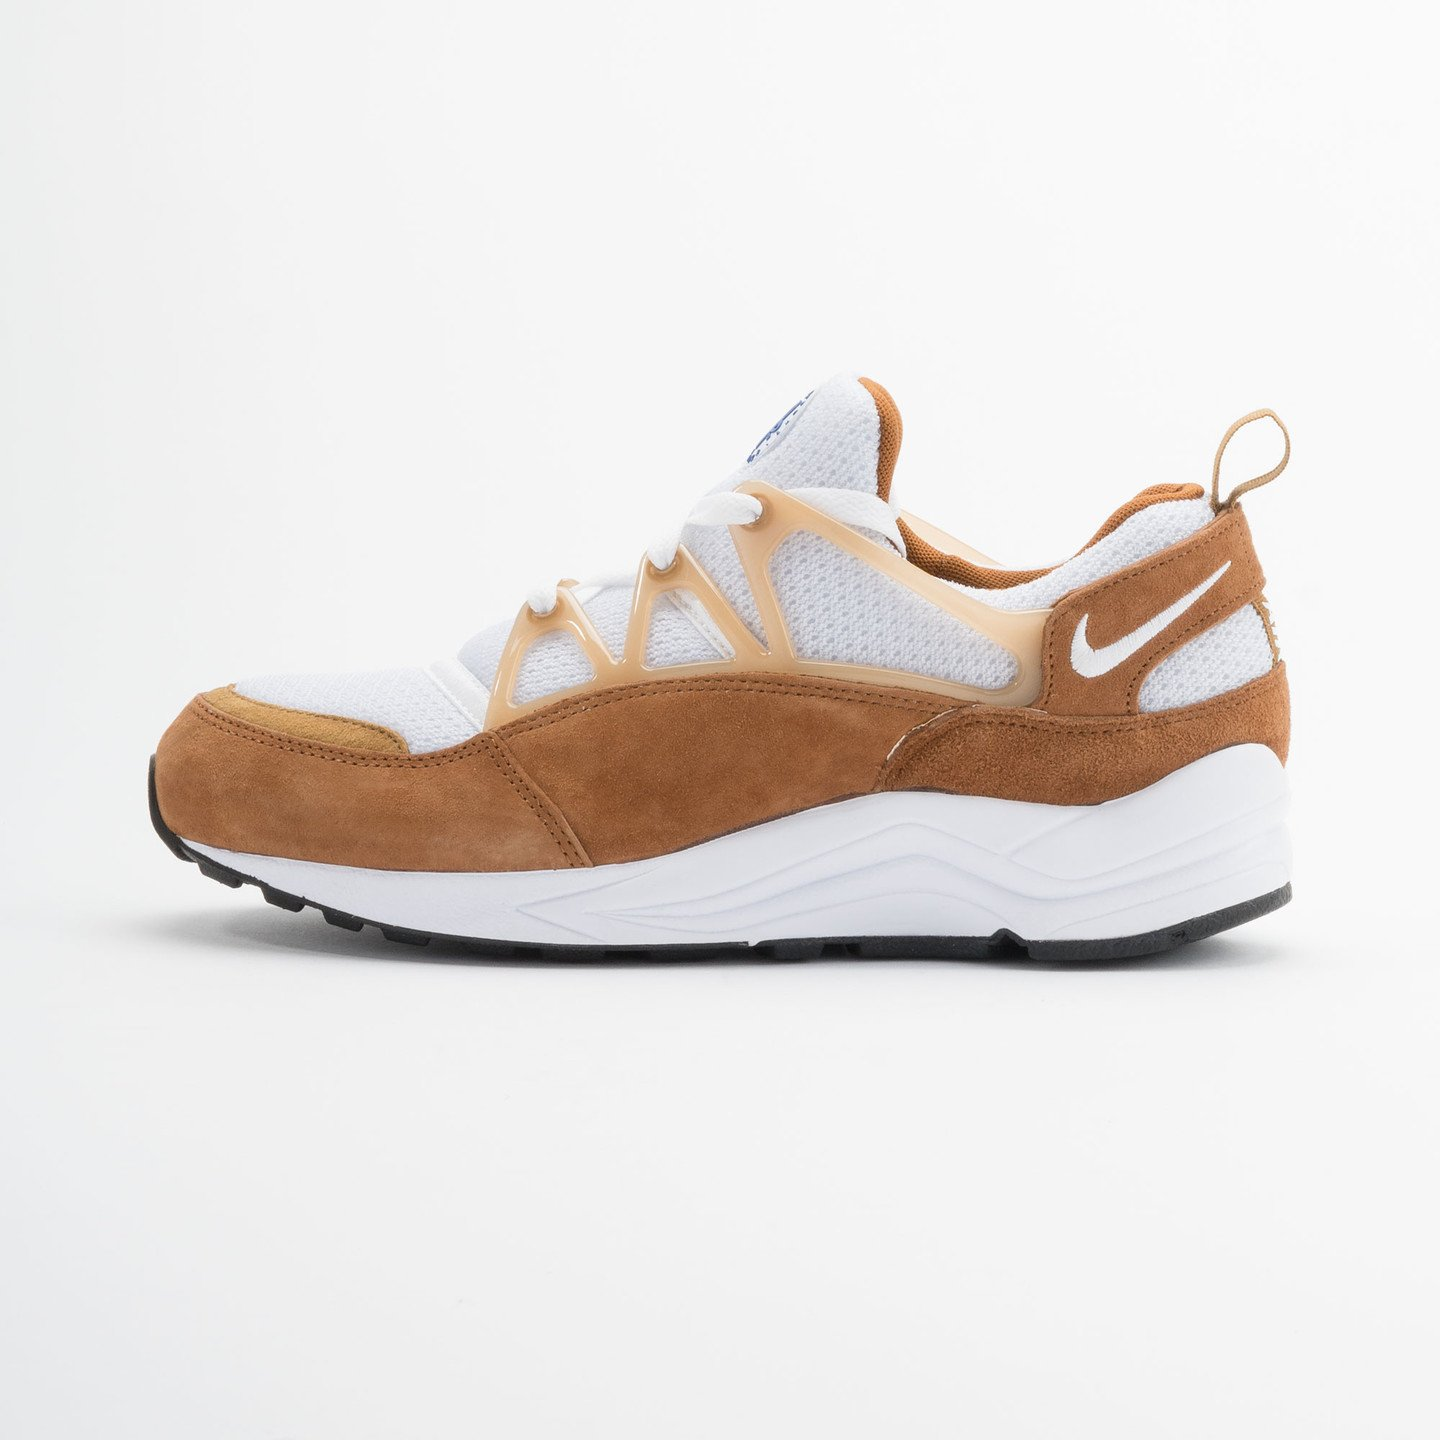 Nike Air Huarache Light Dark Curry / White-Wheat 306127-717-45.5